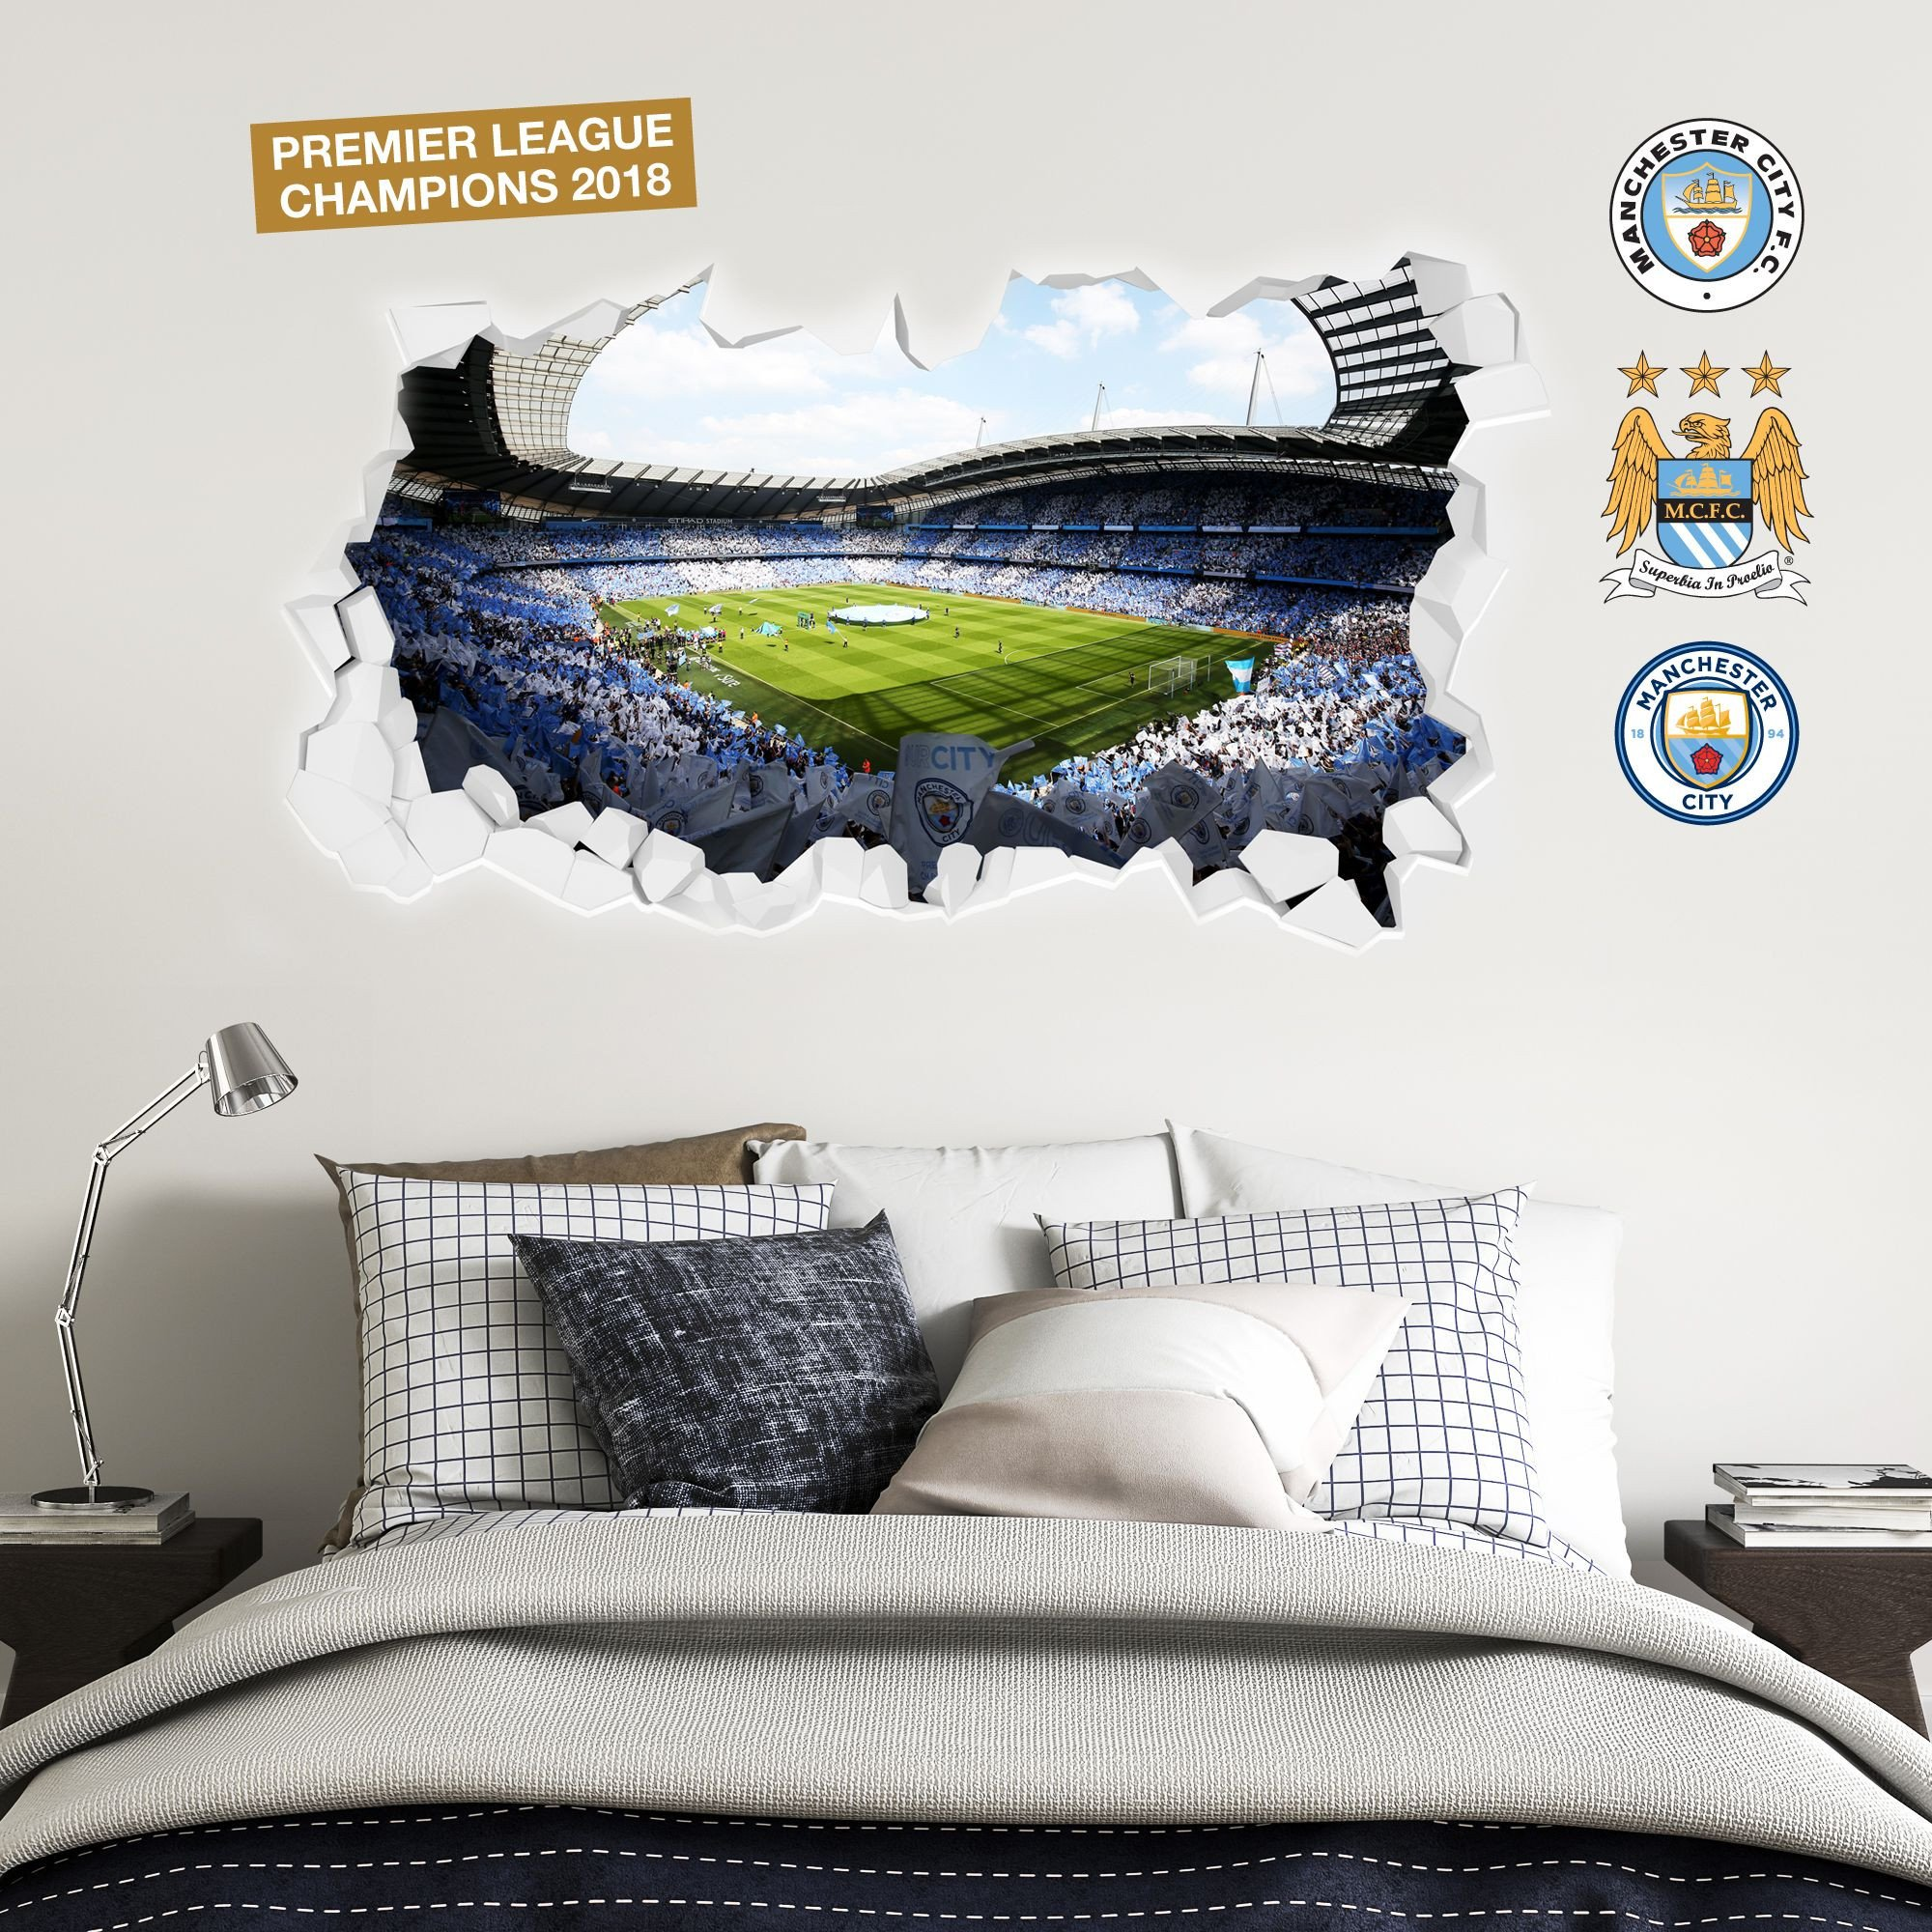 Wall Mural Ideas for Bedroom Inspirational Pin On Manchester City F C Wall Stickers